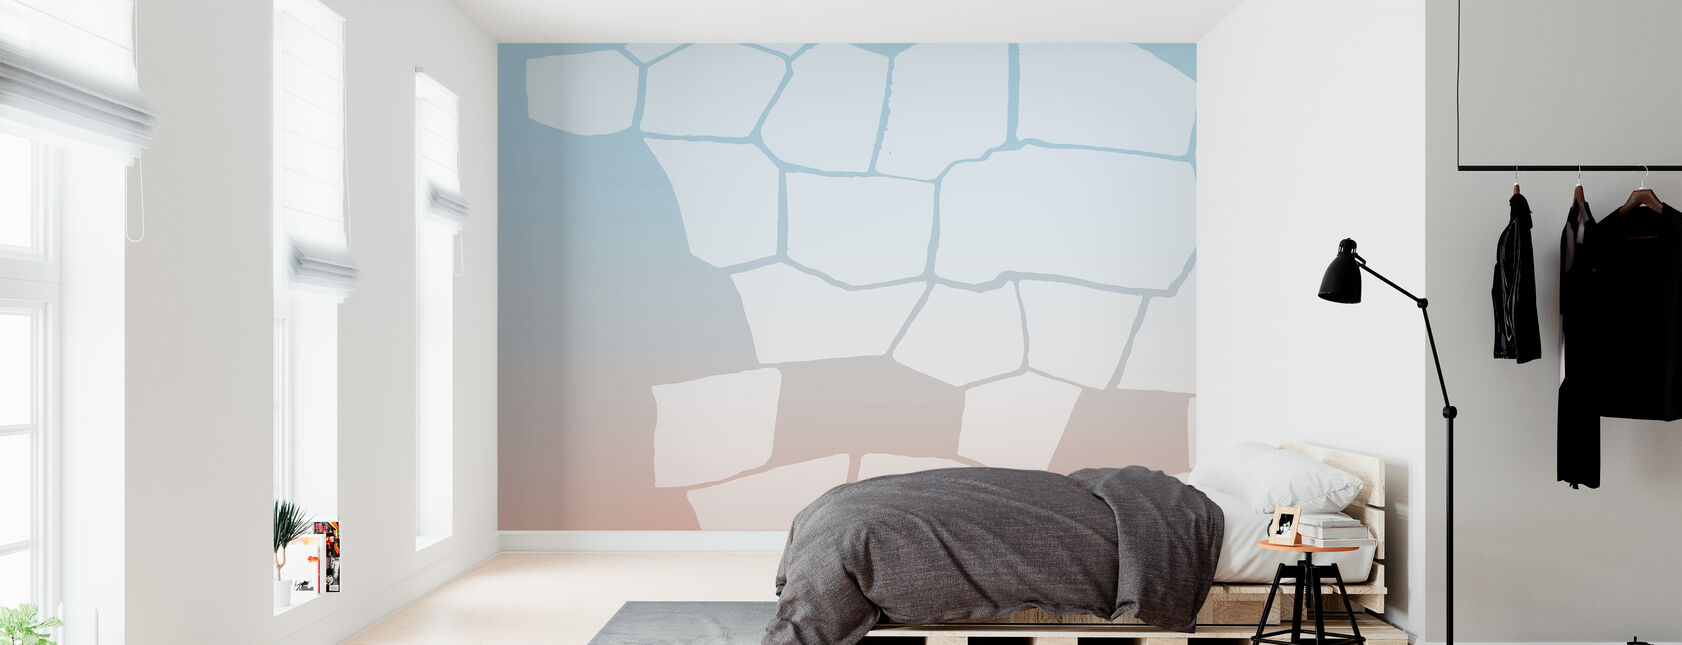 Inverted White Wall - Wallpaper - Bedroom